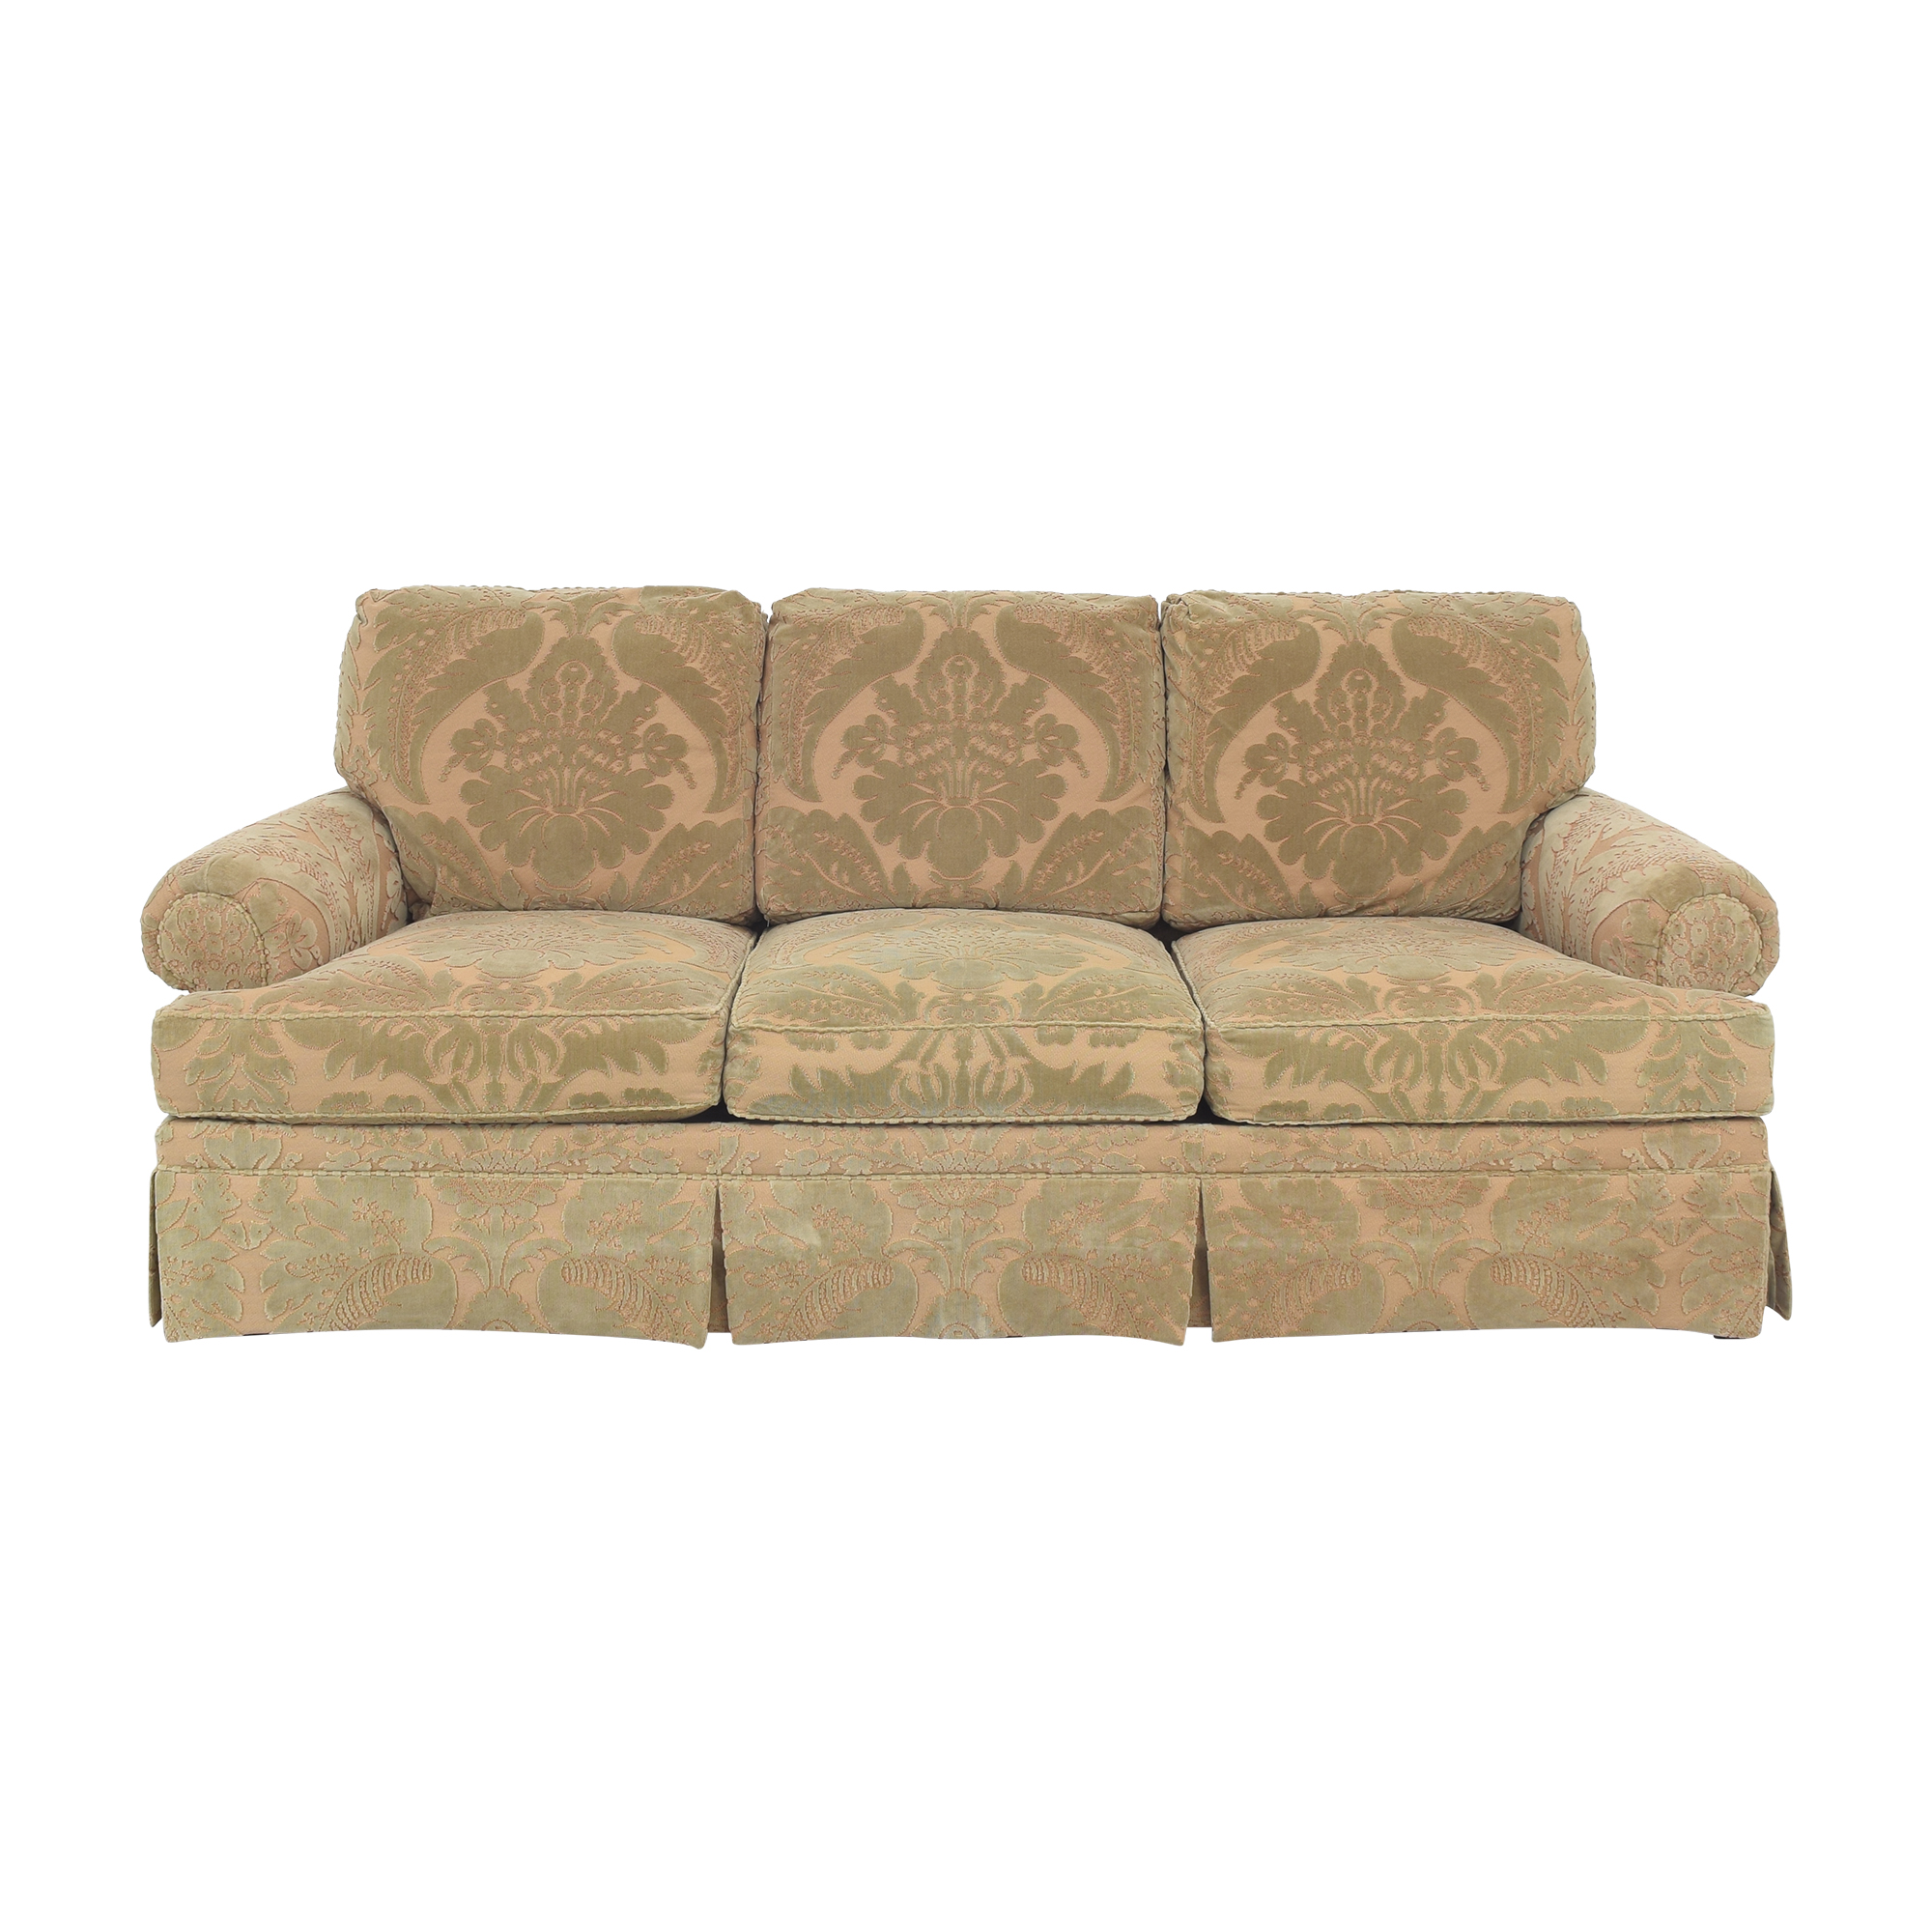 Hickory Chair Hickory Chair Sovereign Collection Devon Sofa used